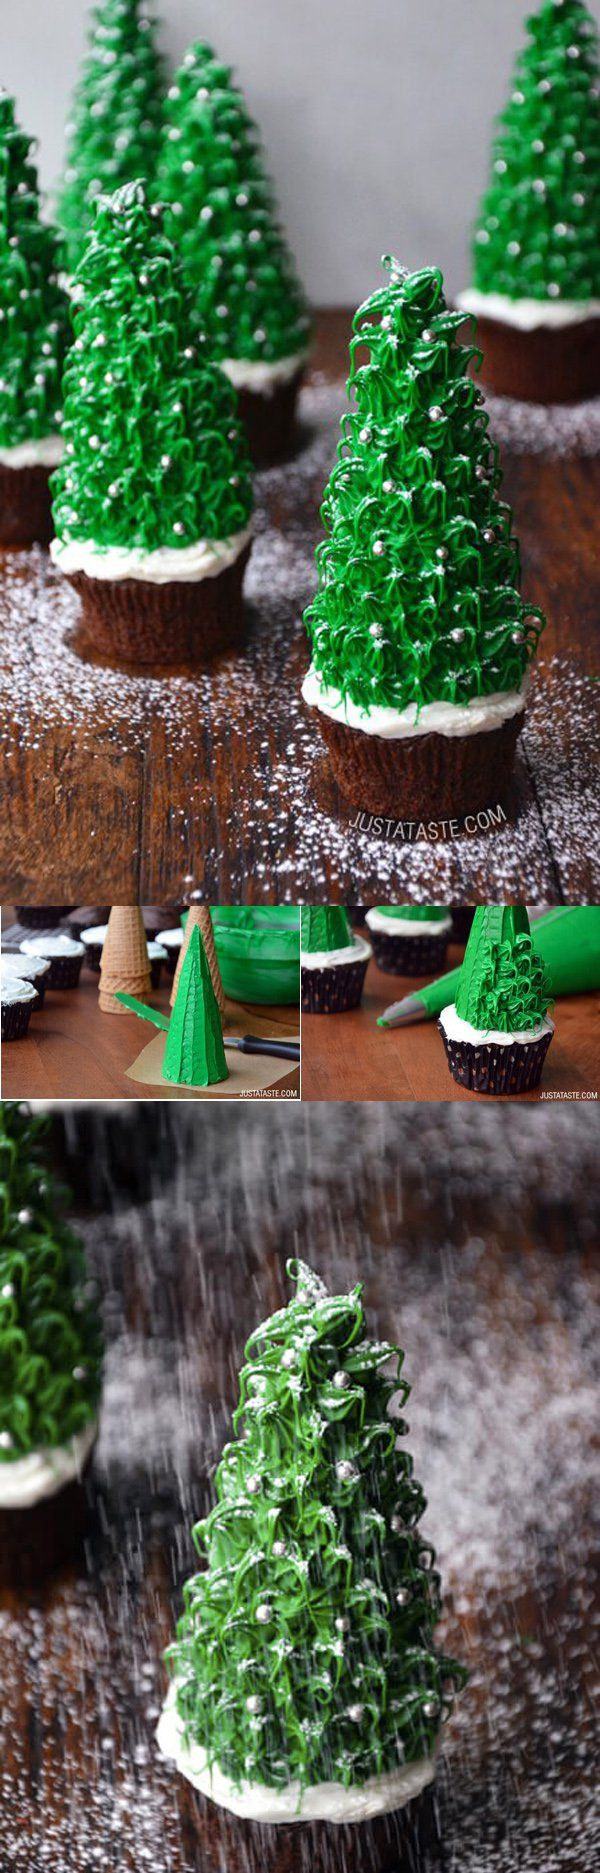 Pine tree inspired Christmas cupcakes. The chocolate cupcakes have been topped with green icing decoration to mimic a pine tree on the snow and designed with silver colored icing to look like shiny Christmas balls.